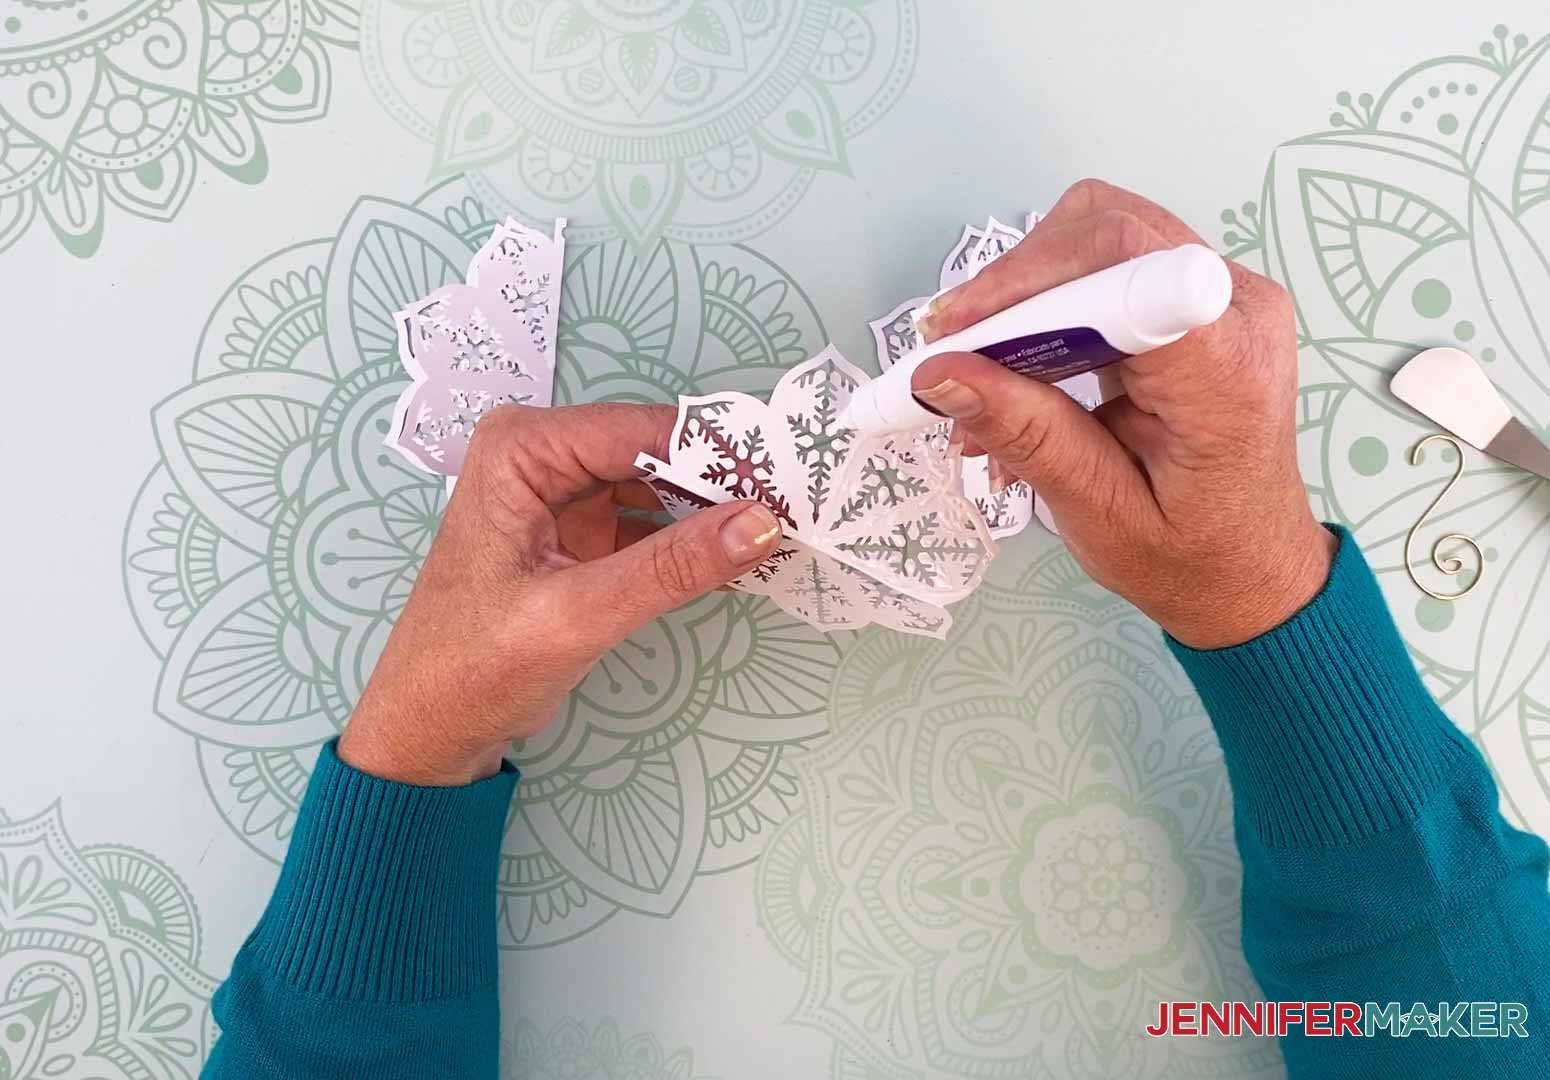 Add glue to one half of the diy paper ornament